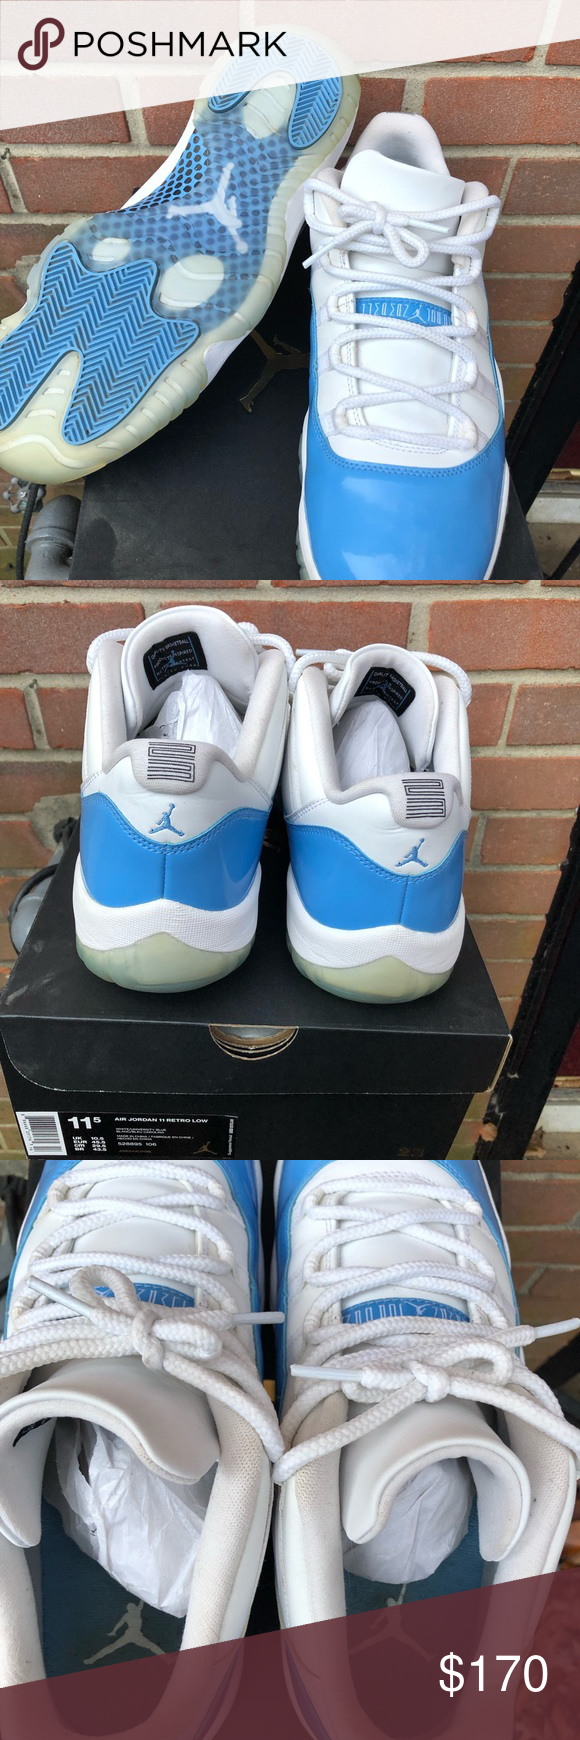 48bac9cb08a Air Jordan 11 low UNC (2017 release) Worn once 11.5 UNC Jordan 11 low's.  These have literally been on my shoe shelf collecting dust bunnies (see box  in ...